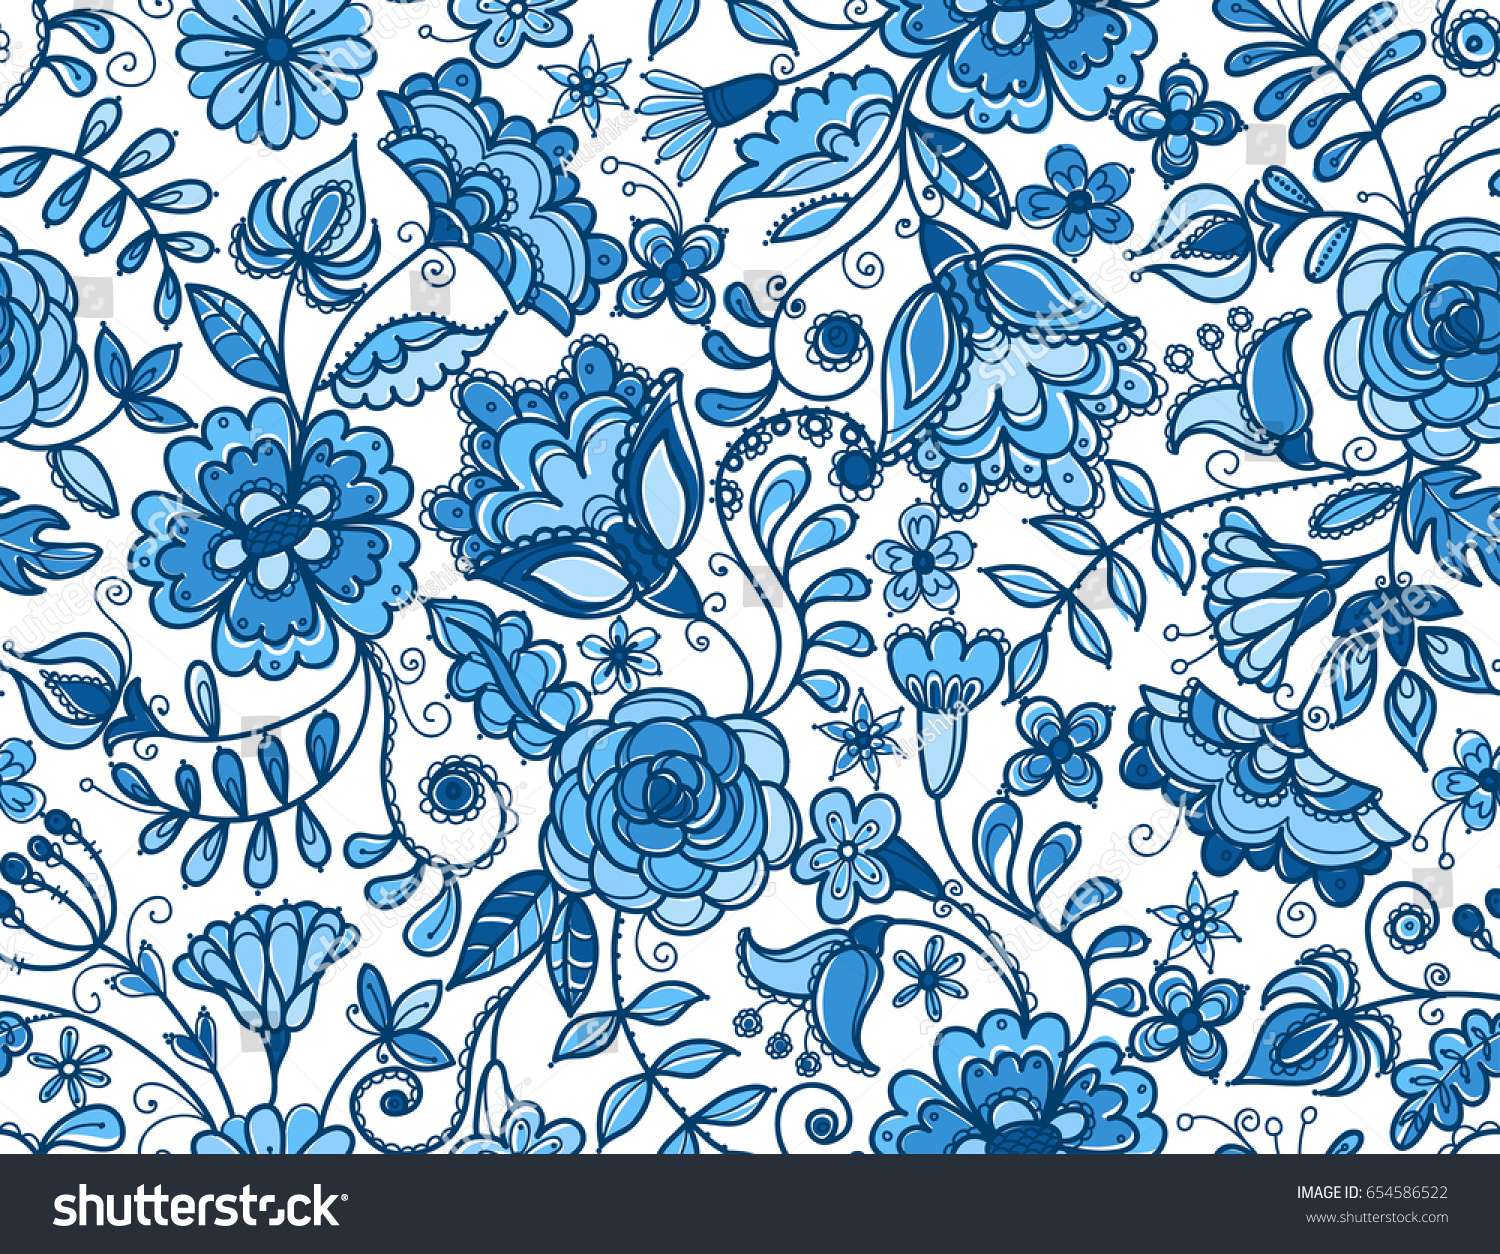 Artistic floral element abstract gzhel folk art blue flowers stock - Traditional Russian Vector Seamless Pattern In Gzhel Style Fabulous Blue Flowers On White Background